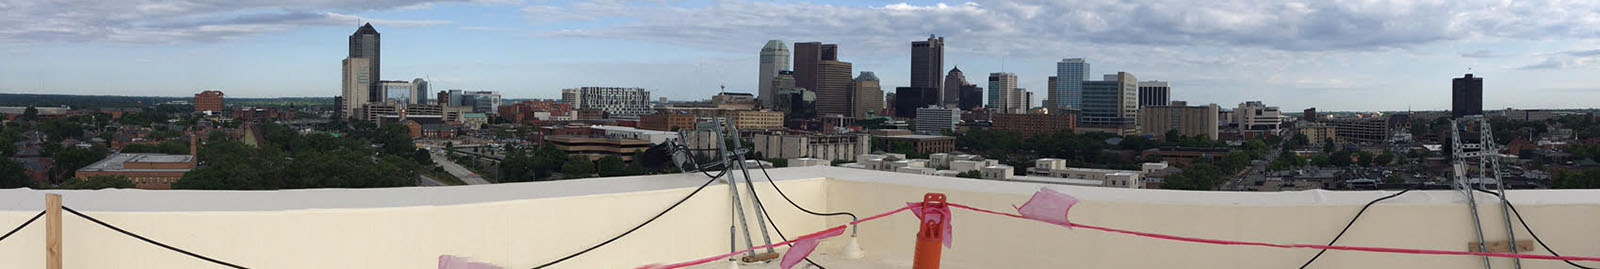 Phinney Industrial, Inc. Columbus, OH | Industrial Roofing | Sheet Metal |  Crane And Dump Services